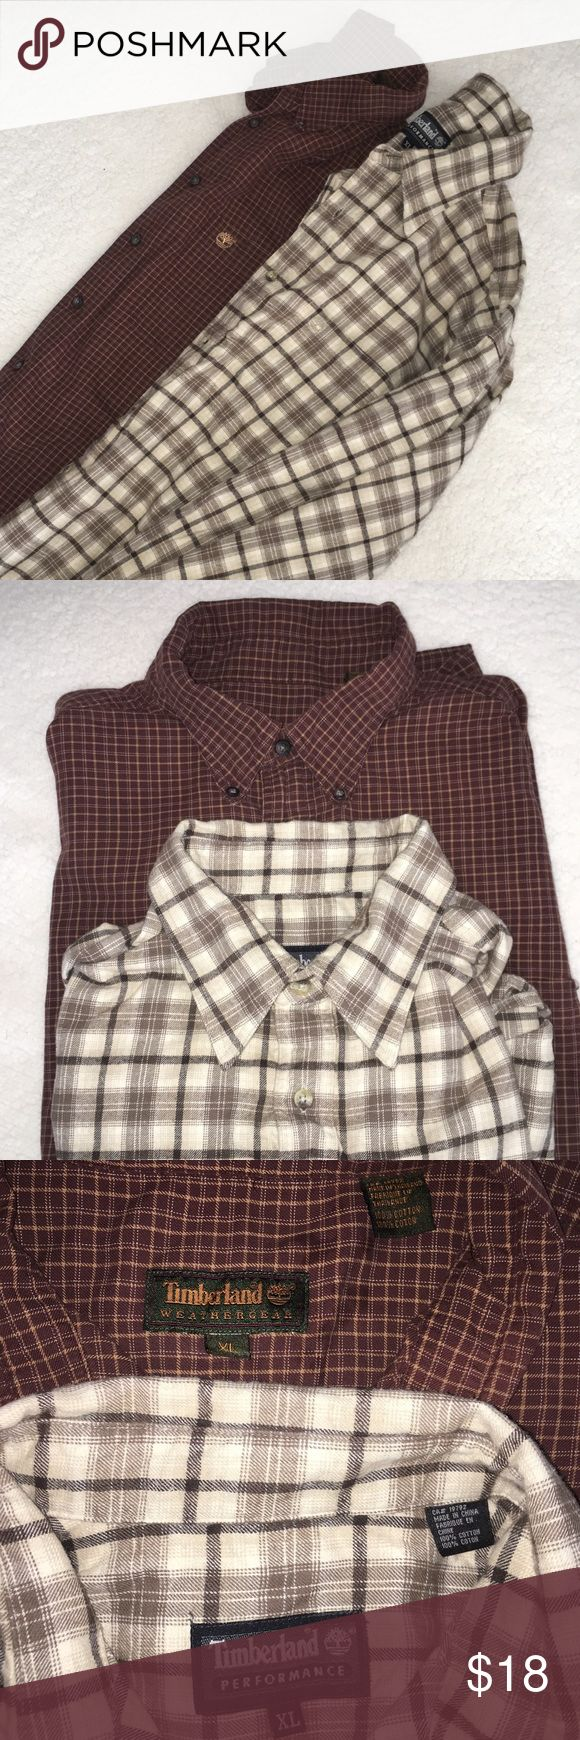 Bundle of 2 XL Timberland Long Sleeve Button Downs Bundle of 2 XL Timberland Long Sleeve Button Downs. See pictures for colors. Comment with questions or if you only want one. Used. Timberland Shirts Casual Button Down Shirts